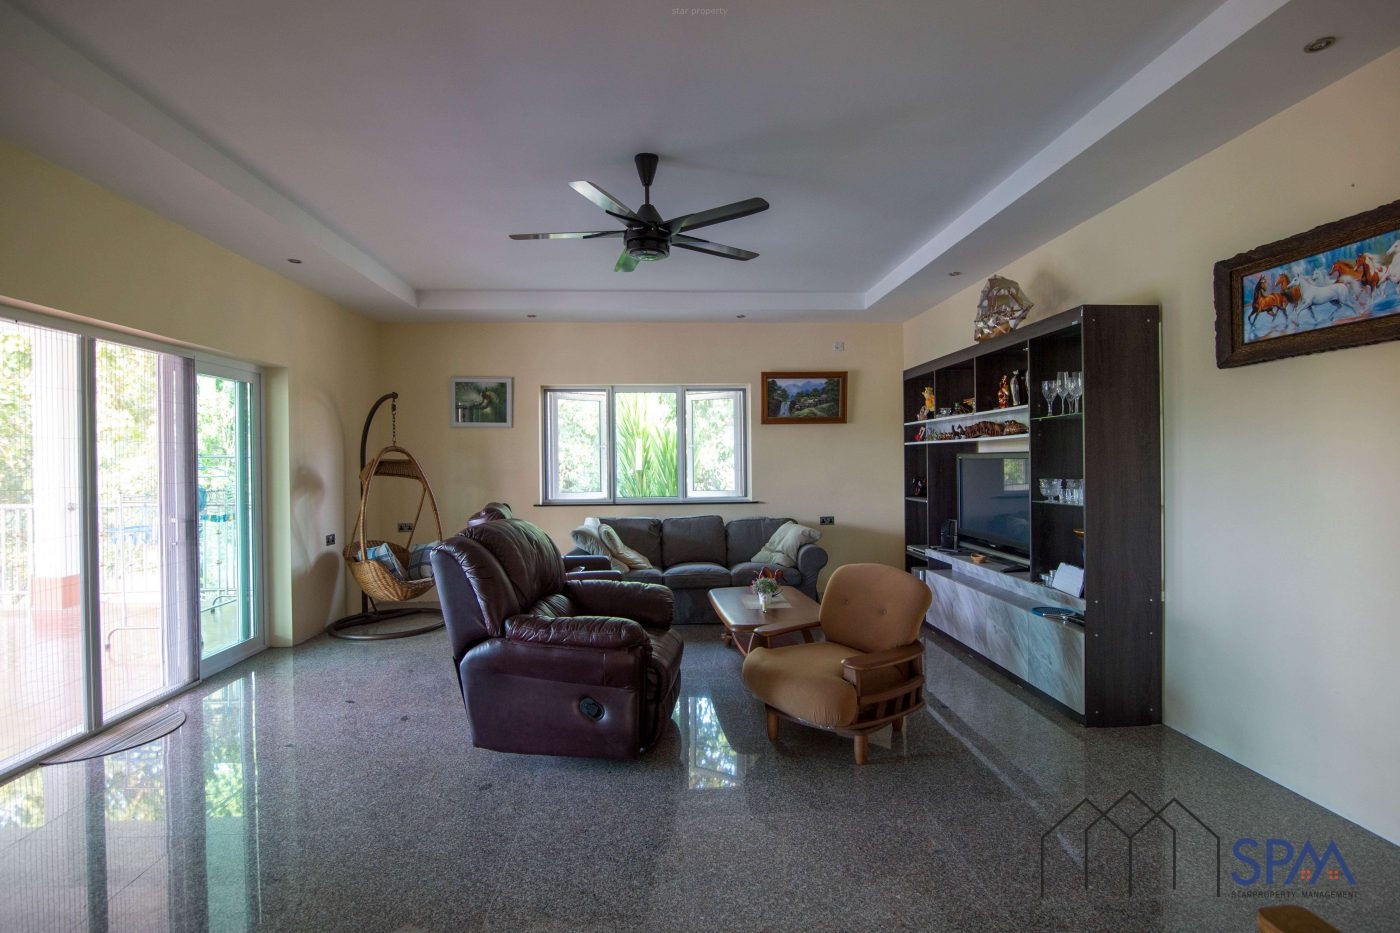 Built-in kitchen villa for sale good price